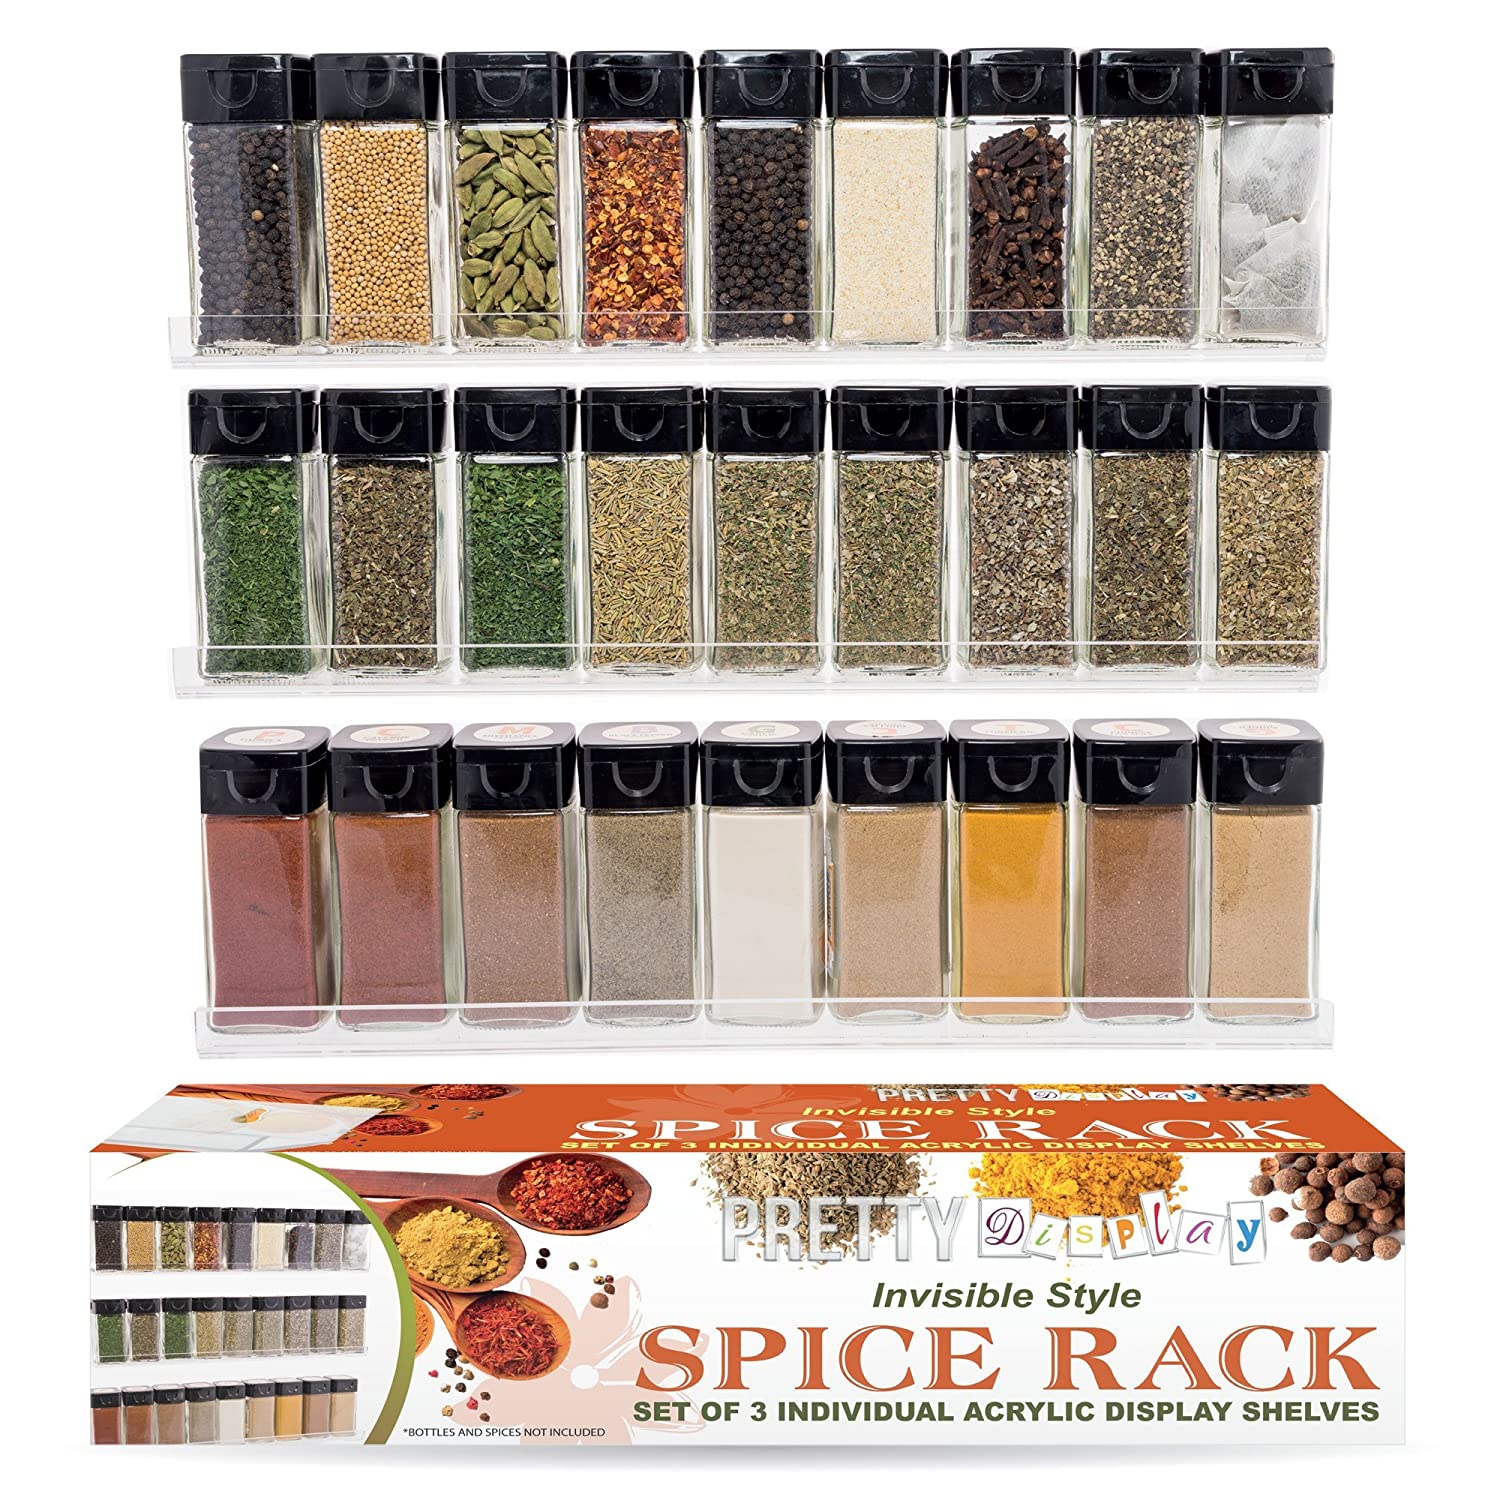 Amazon.com: The 'Invisible' Acrylic Spice Rack. Strong, Sturdy,  Space-Saving, Three Clear Floating Shelves (15 x 2 inch) - 3 Tiered Shelf  Set, Easy to Wall ...